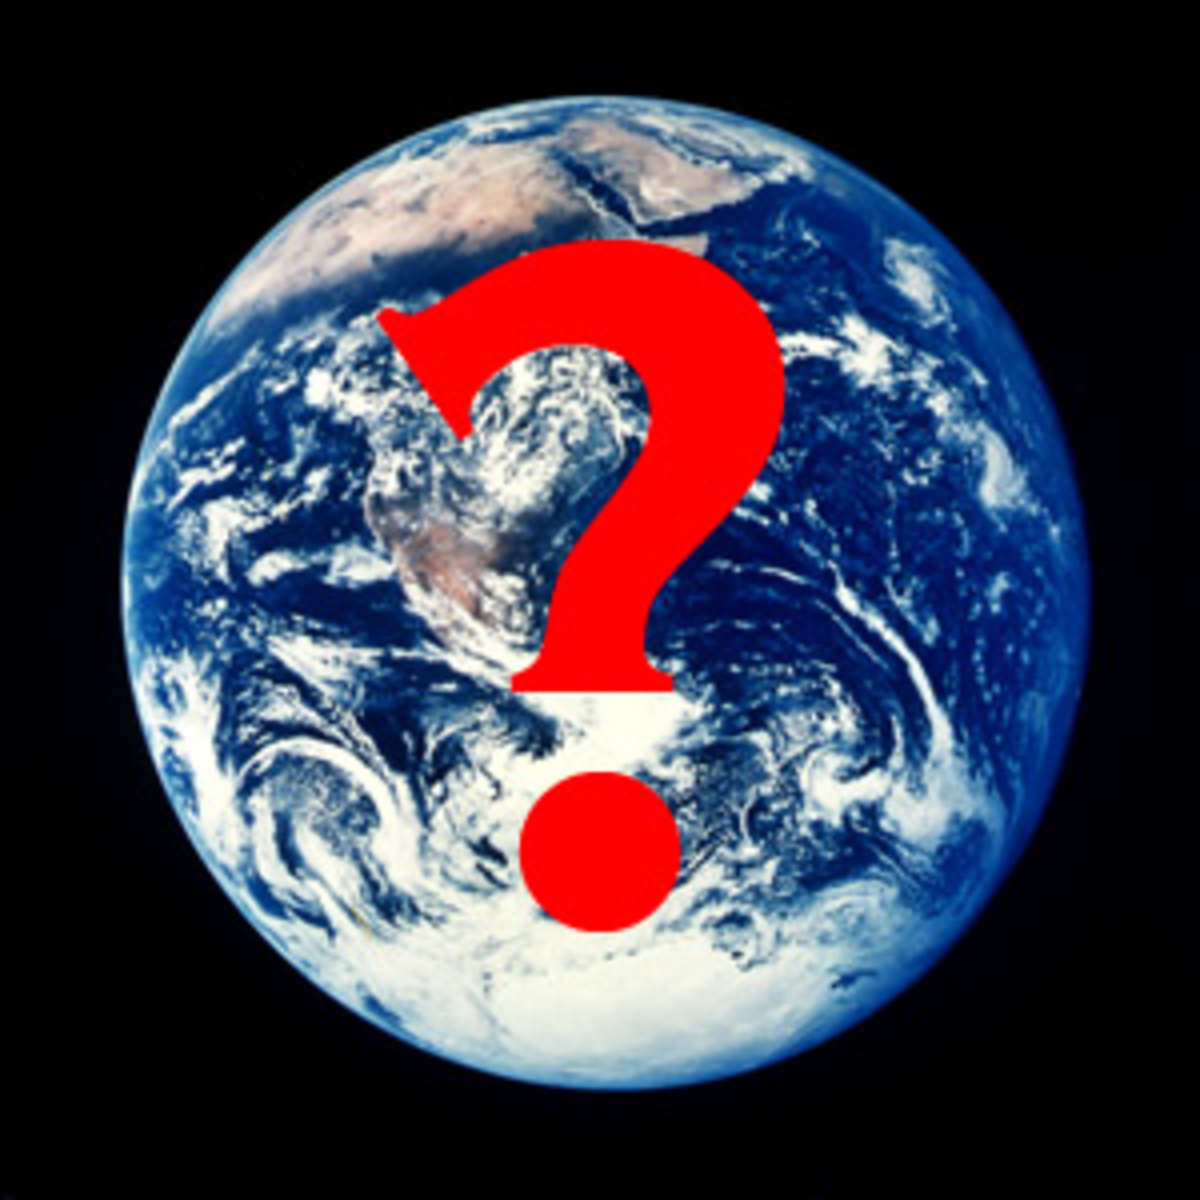 earth_questionmark.jpg